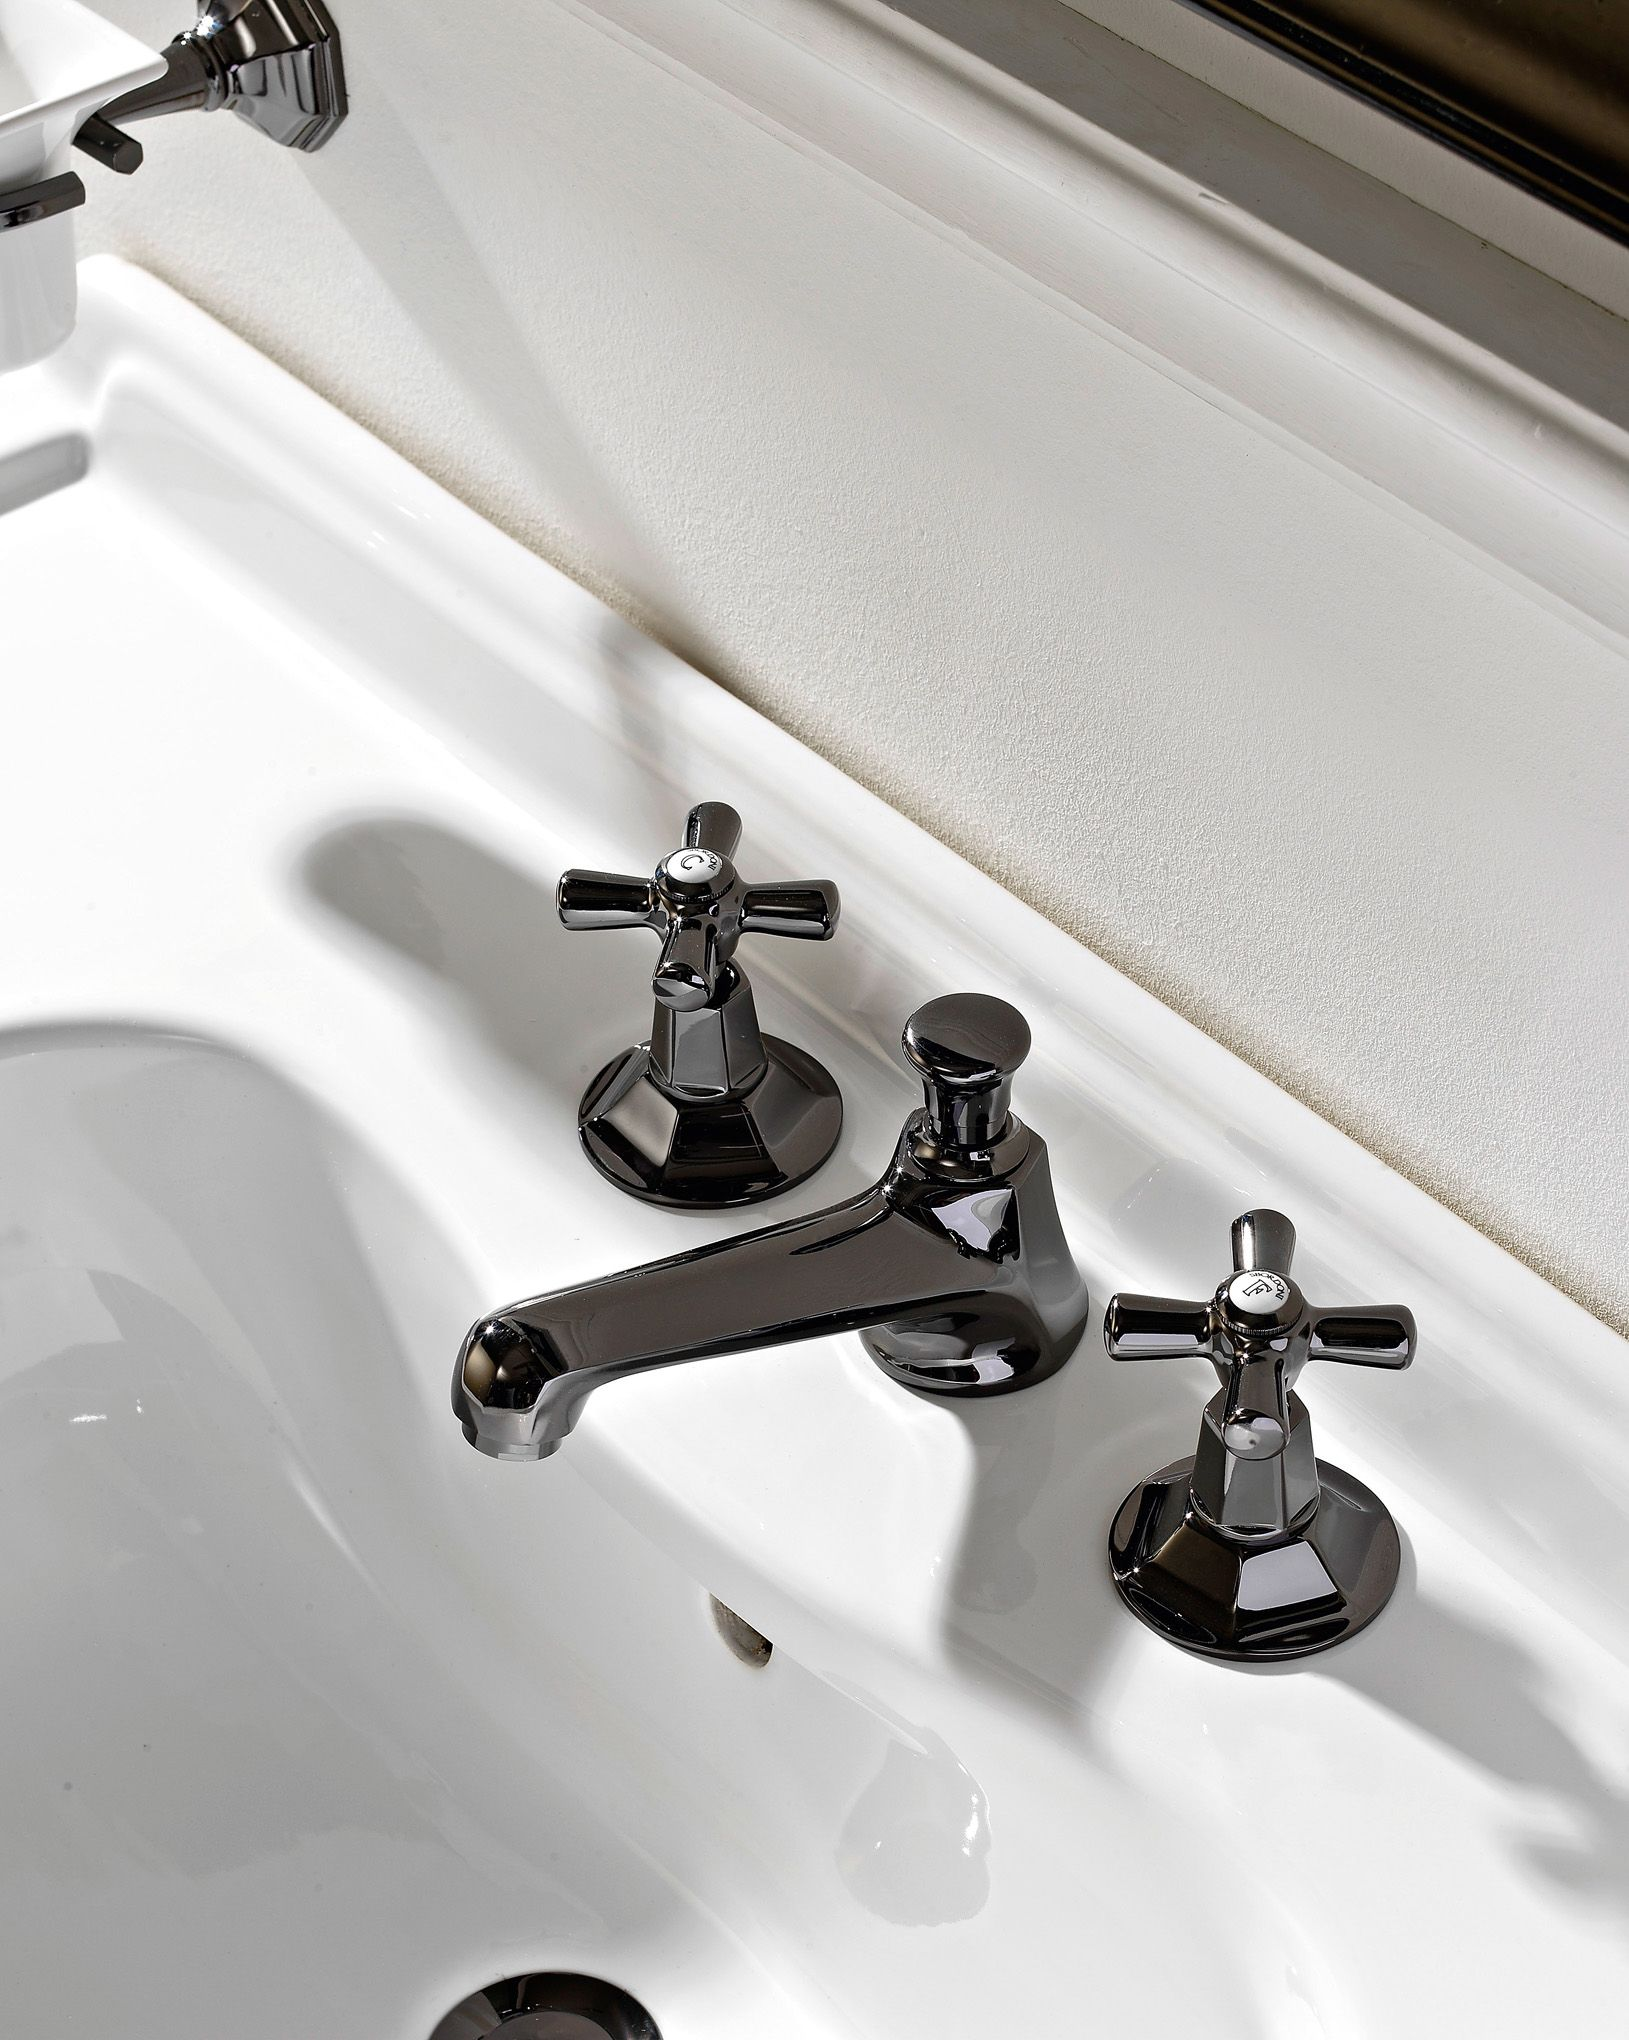 Brass sink taps bathroom - Matching Art Deco Taps Are Also Available With Finishes In Chrome Natural Brass Burnished